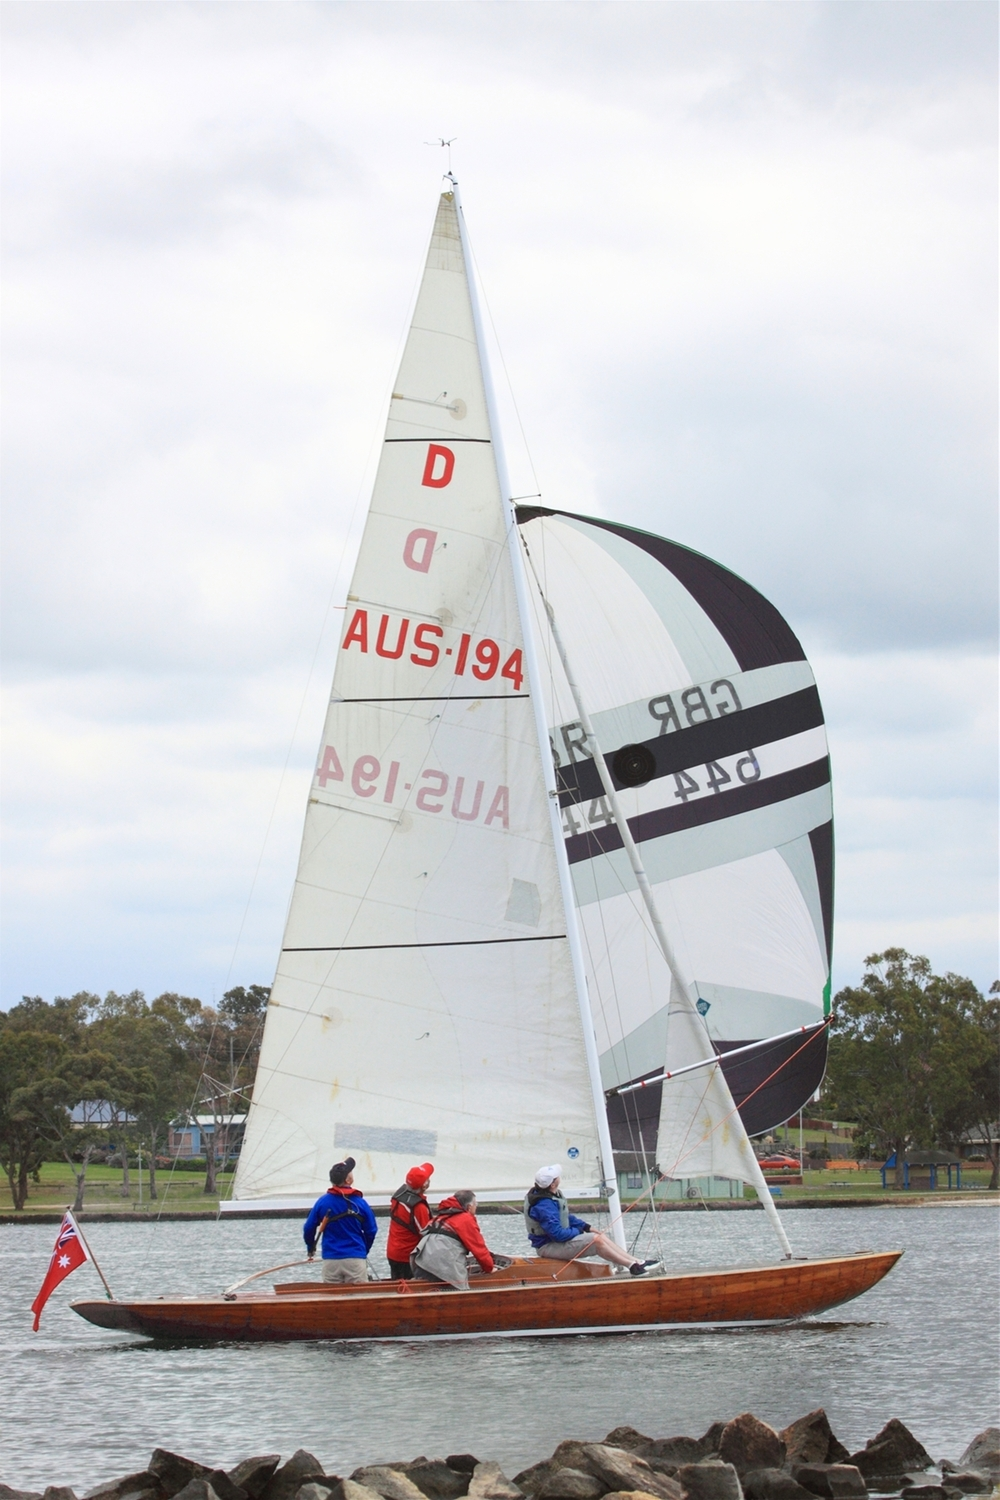 """International Dragon Class Keelboat                        Normal   0           false   false   false     EN-US   JA   X-NONE                                                                                                                                                                                                                                                                                                                                                                              /* Style Definitions */ table.MsoNormalTable {mso-style-name:""""Table Normal""""; mso-tstyle-rowband-size:0; mso-tstyle-colband-size:0; mso-style-noshow:yes; mso-style-priority:99; mso-style-parent:""""""""; mso-padding-alt:0cm 5.4pt 0cm 5.4pt; mso-para-margin:0cm; mso-para-margin-bottom:.0001pt; mso-pagination:widow-orphan; font-size:12.0pt; font-family:Cambria; mso-ascii-font-family:Cambria; mso-ascii-theme-font:minor-latin; mso-hansi-font-family:Cambria; mso-hansi-theme-font:minor-latin; mso-ansi-language:EN-US;}      Siena is a classic wooden Dragon and is constructed of Honduras Mahogany planks, oak ribs and teak deck and cabin top by the world renowned Borresens Boatyard in Denmark in 1967."""